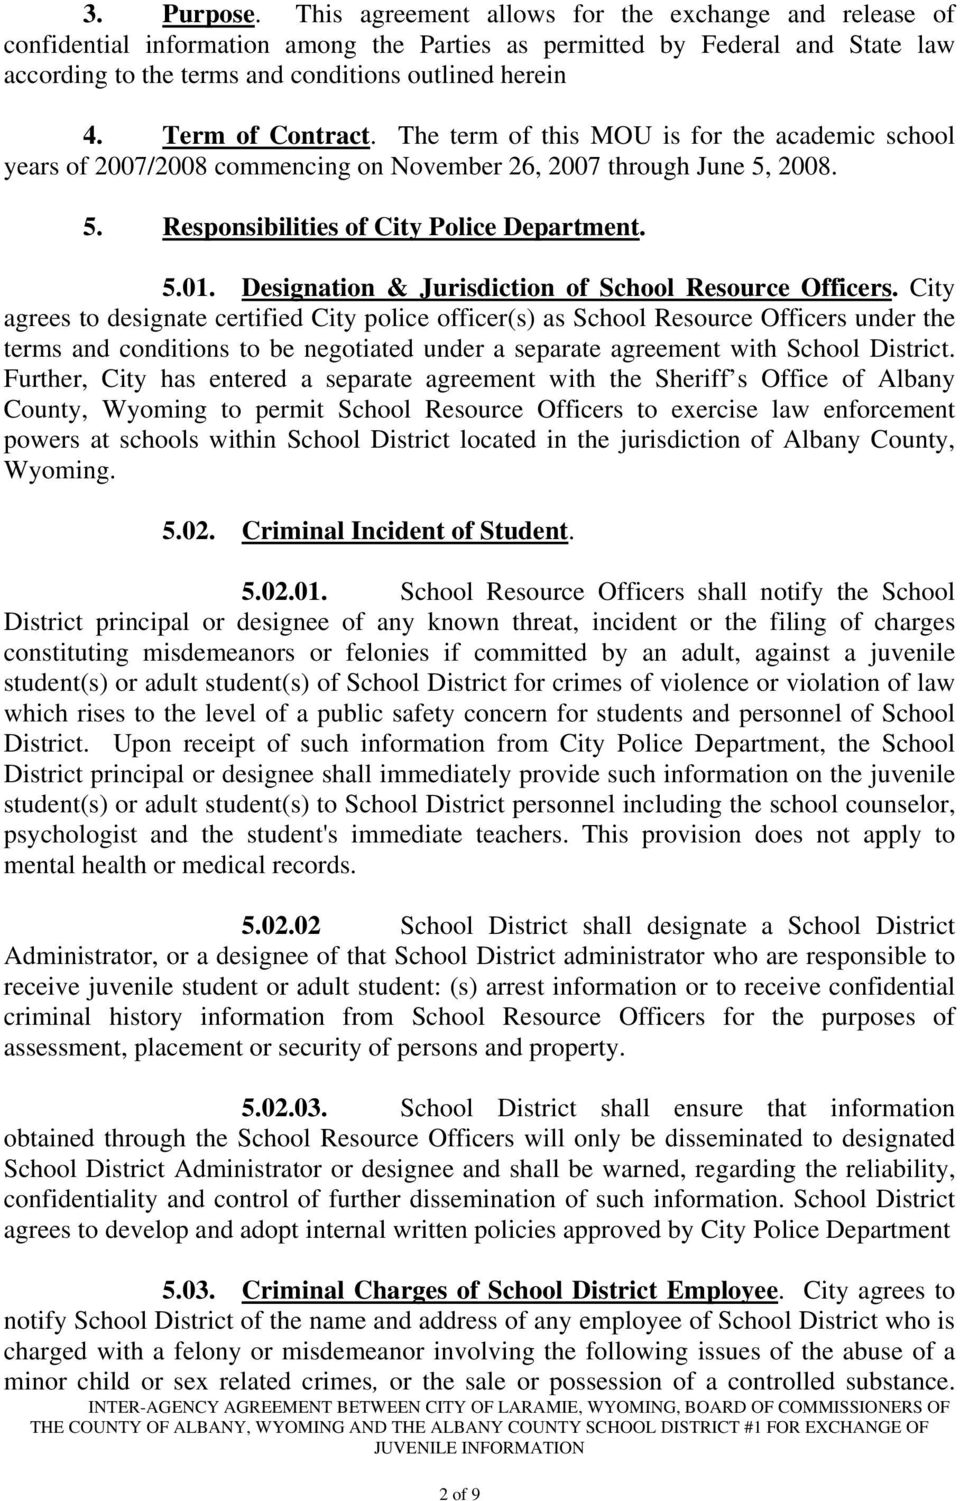 Term of Contract. The term of this MOU is for the academic school years of 2007/2008 commencing on November 26, 2007 through June 5, 2008. 5. Responsibilities of City Police Department. 5.01.